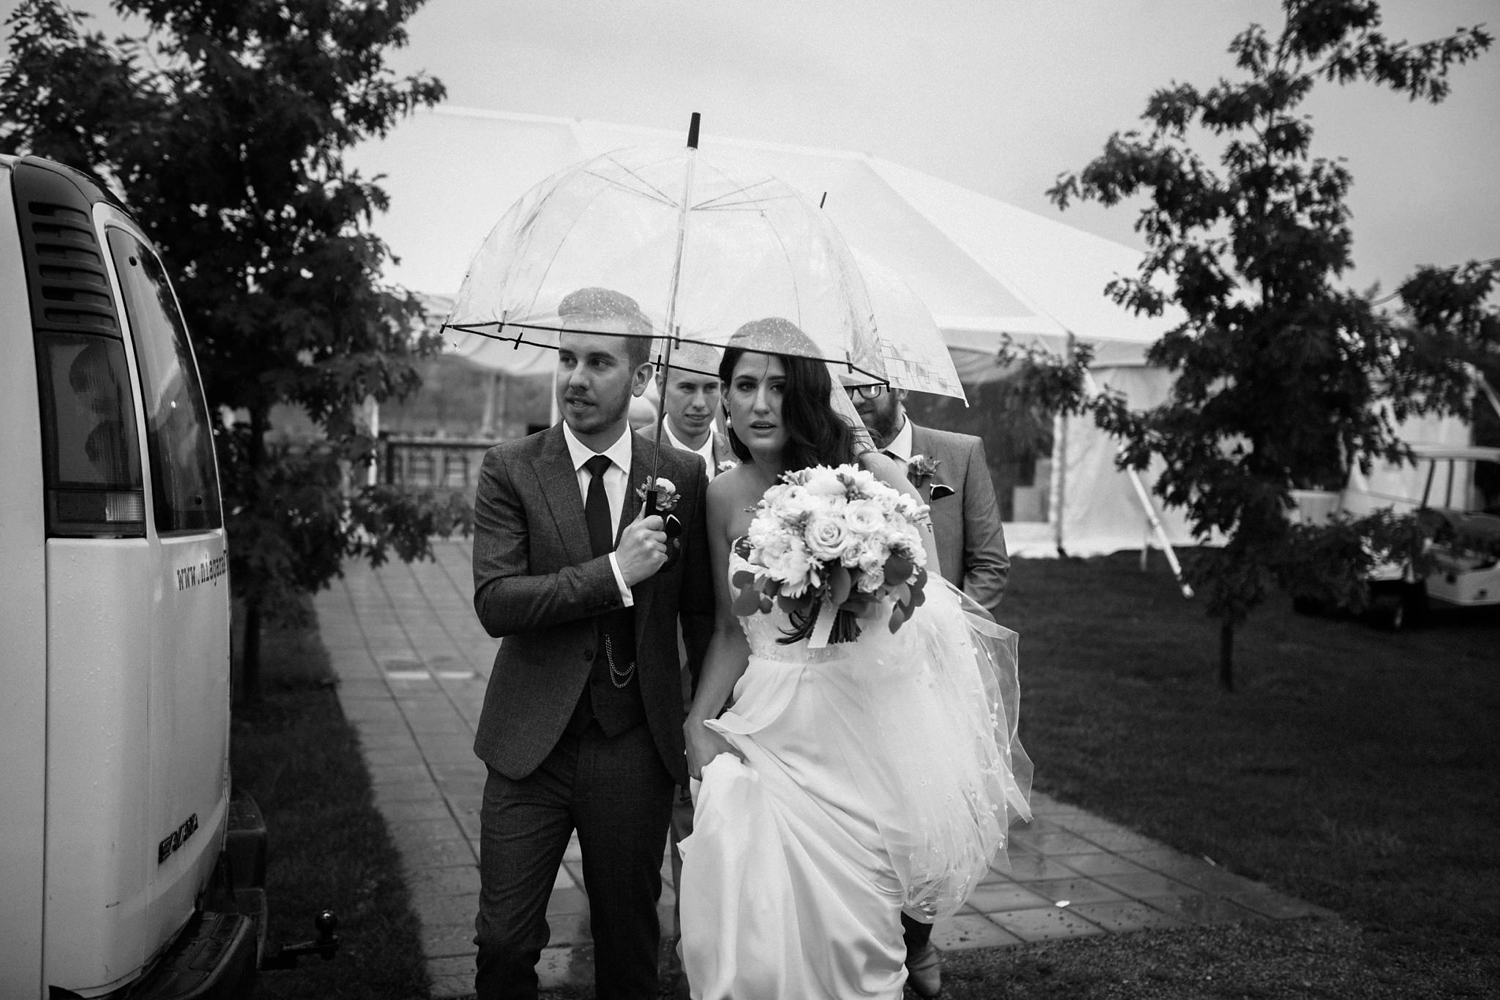 Kurtz-orchard-wedding-photos-danijelaweddings-rainy-romantic024.JPG